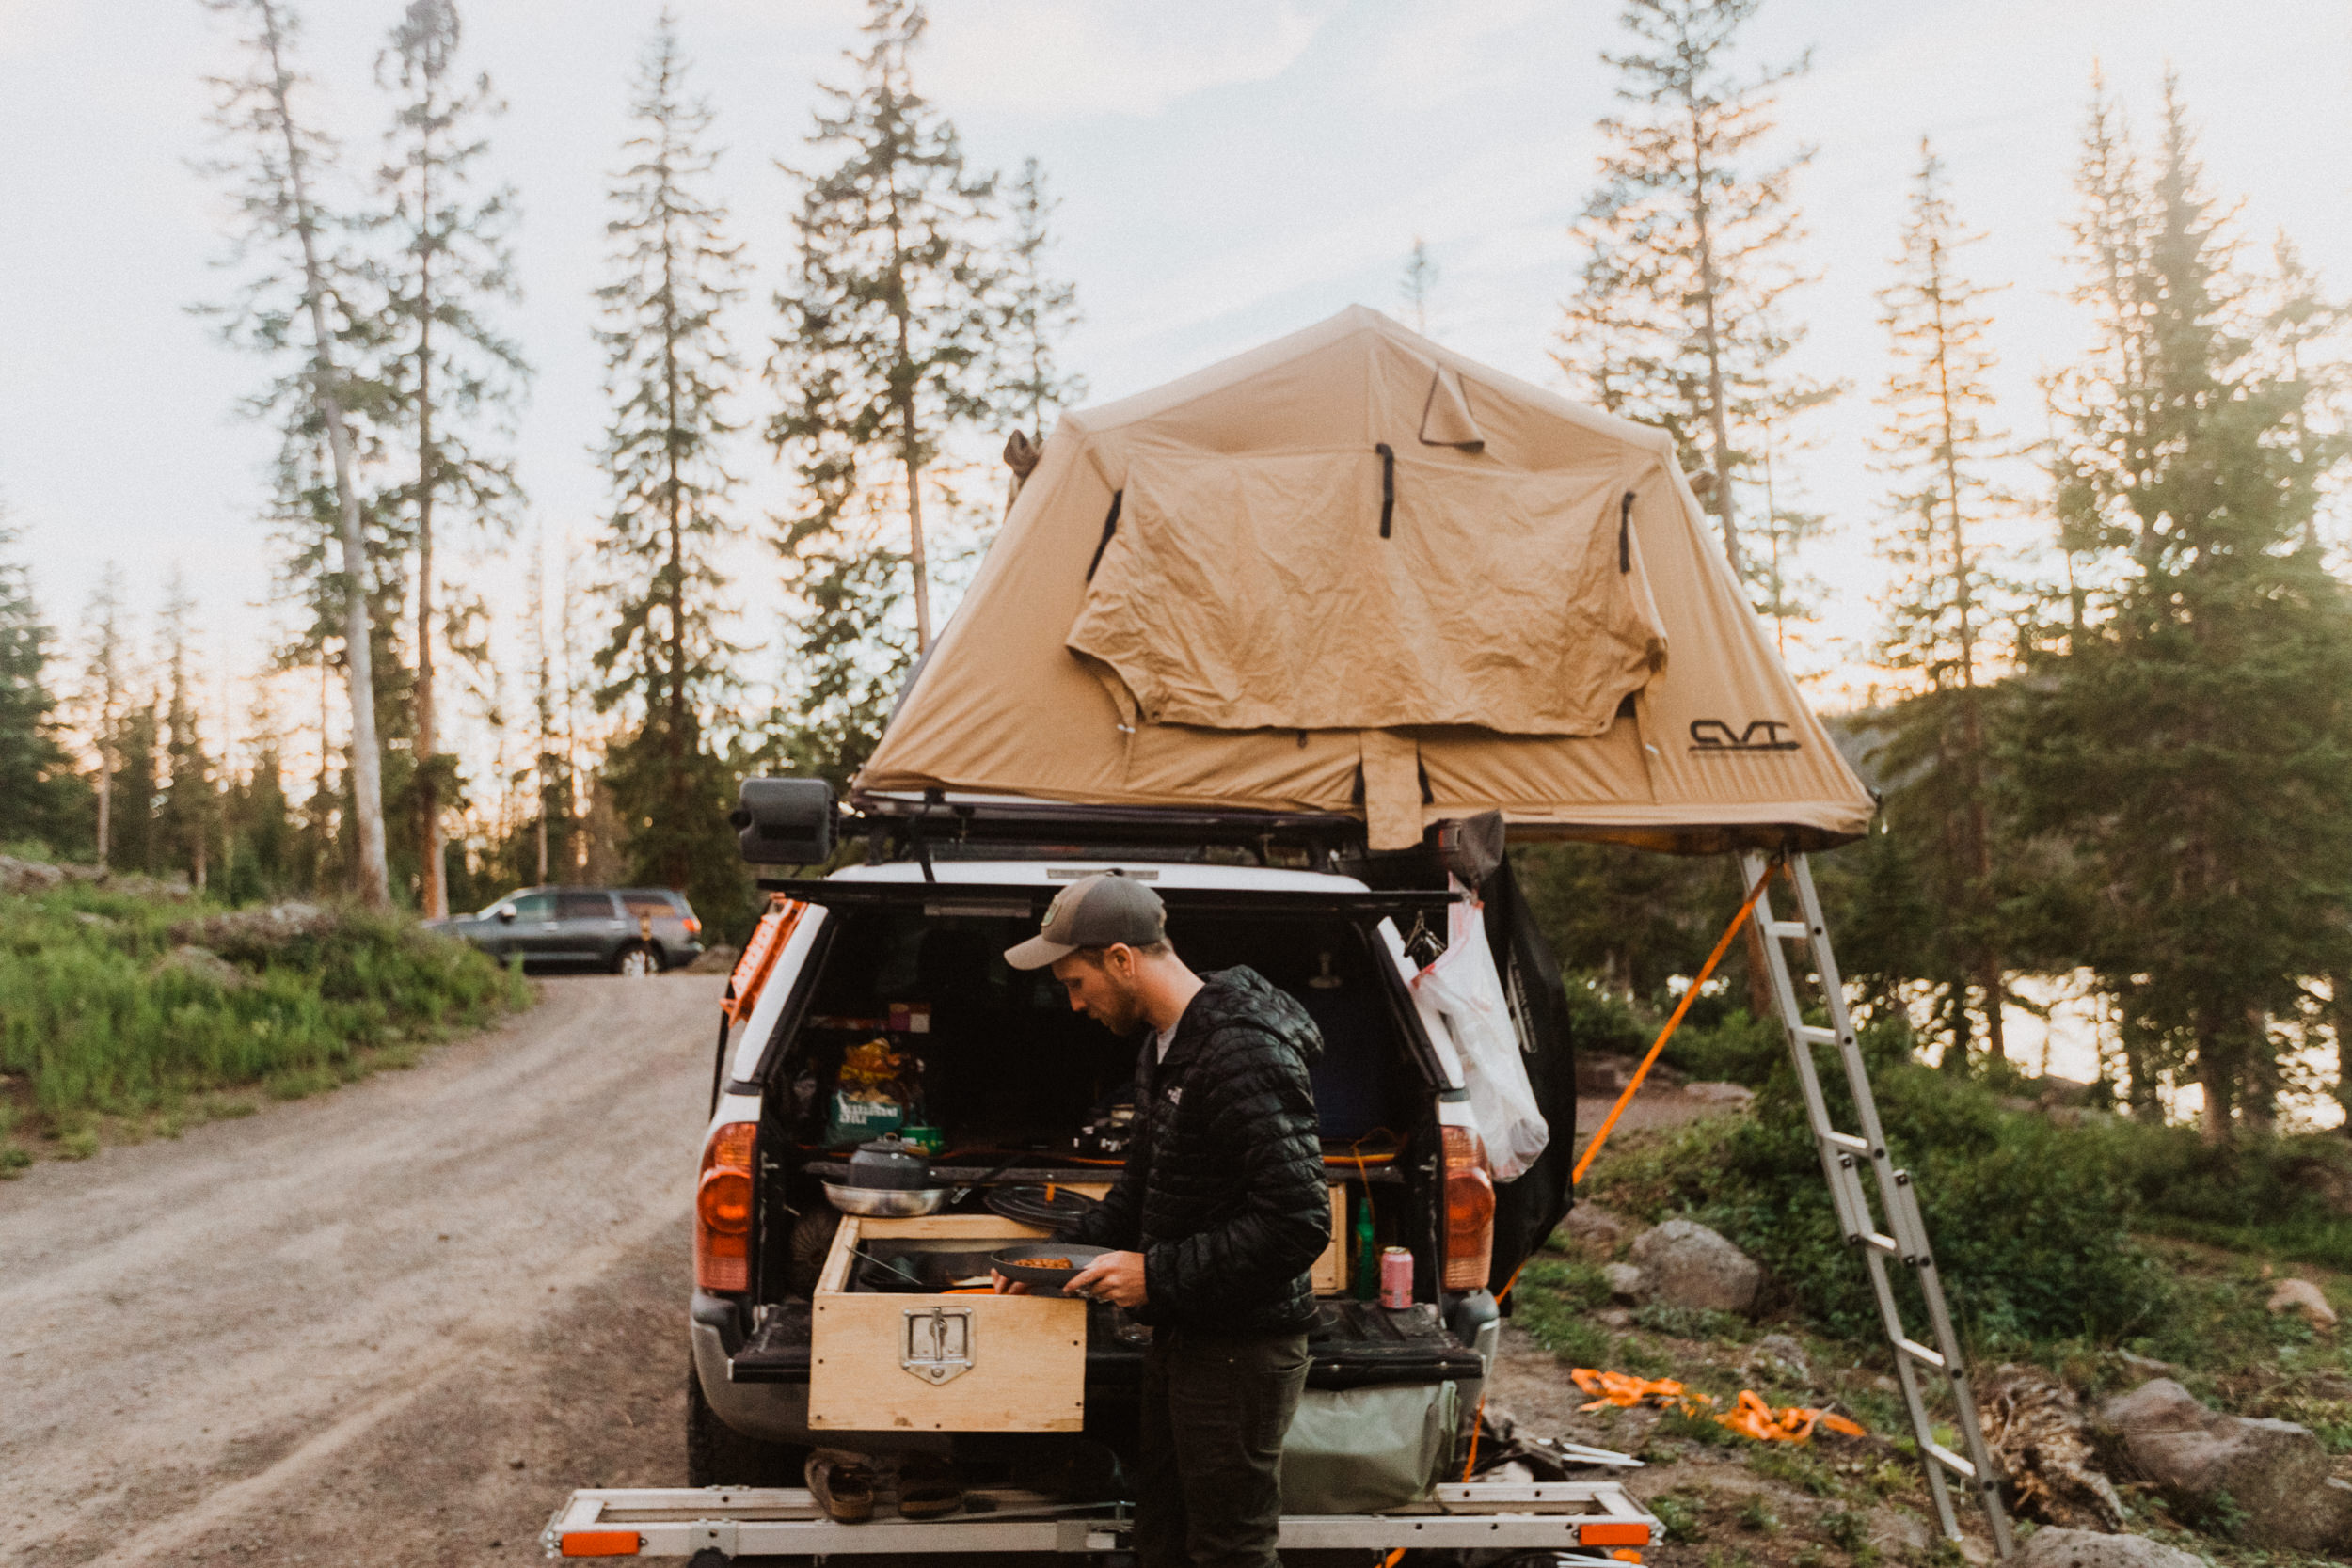 10 Best Items for Camping - Melanzana